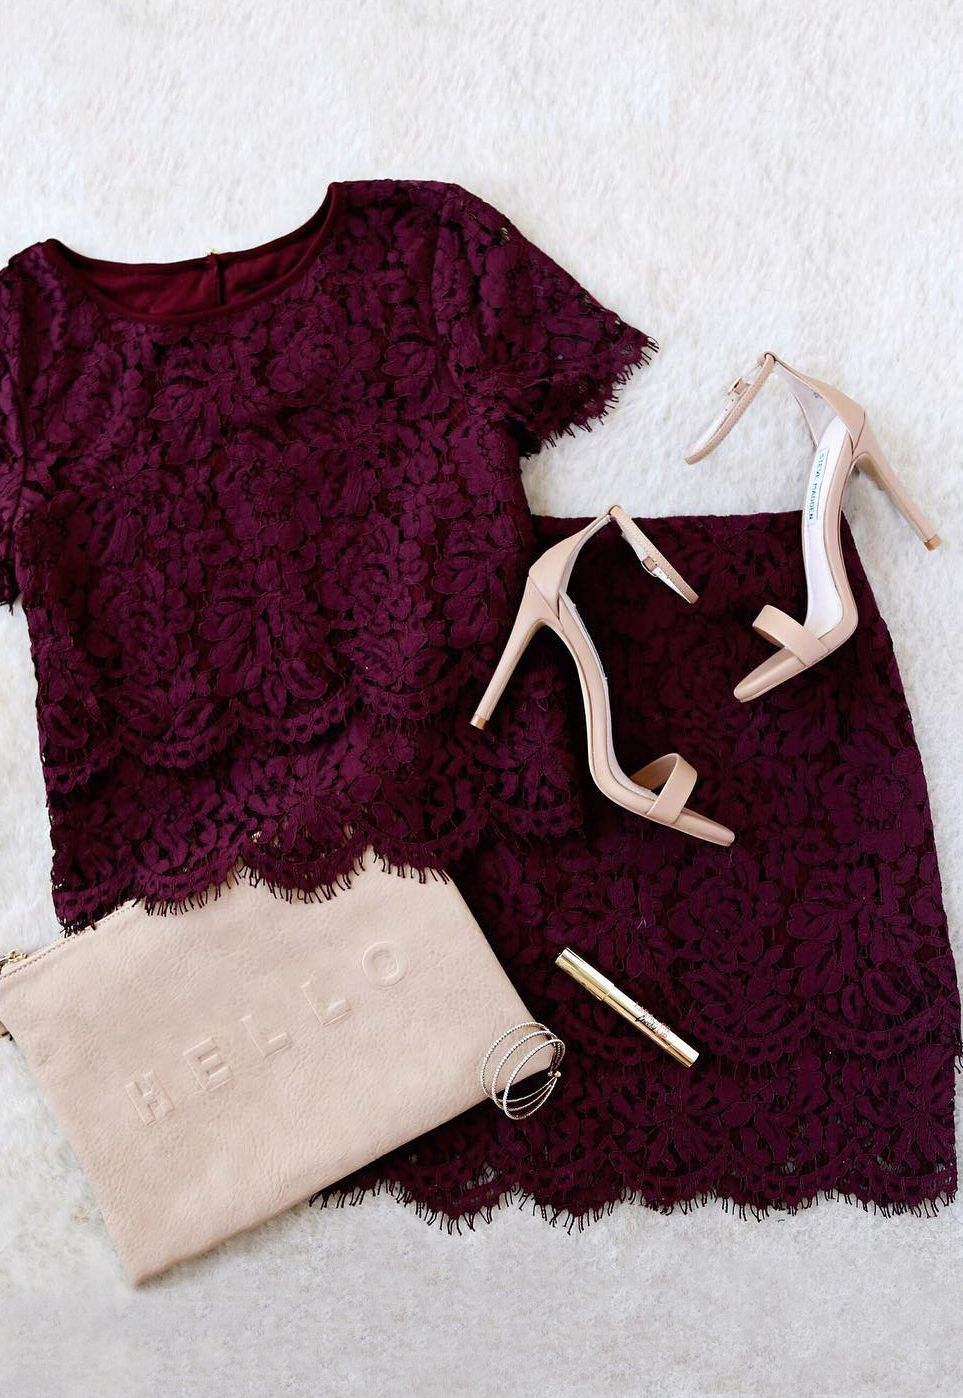 6d6469c80be ... all the good times you've had (and will have!) in the Turn Back Time  Burgundy Lace Two-Piece Dress! Burgundy eyelash lace overlay shapes a cute crop  top ...